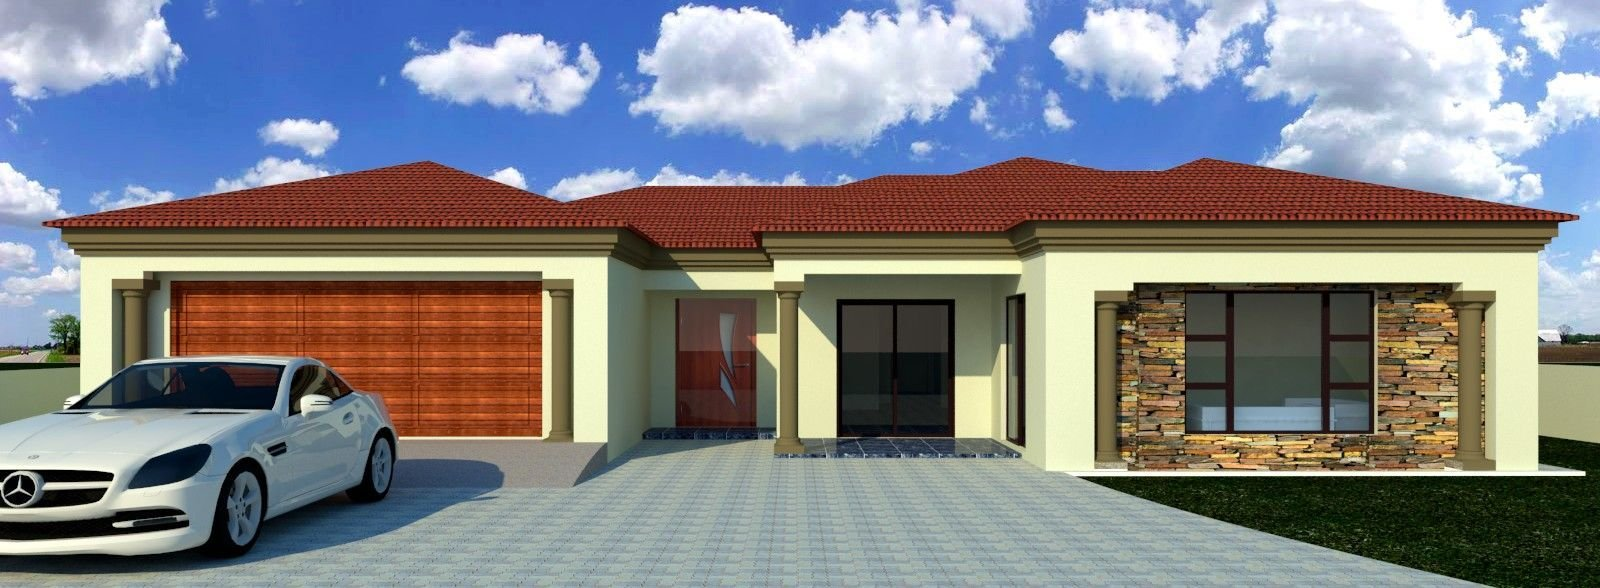 Best Modern African House Plans Lovely Bedroom African House Design Agreeable Home In The Modern Also With Pictures